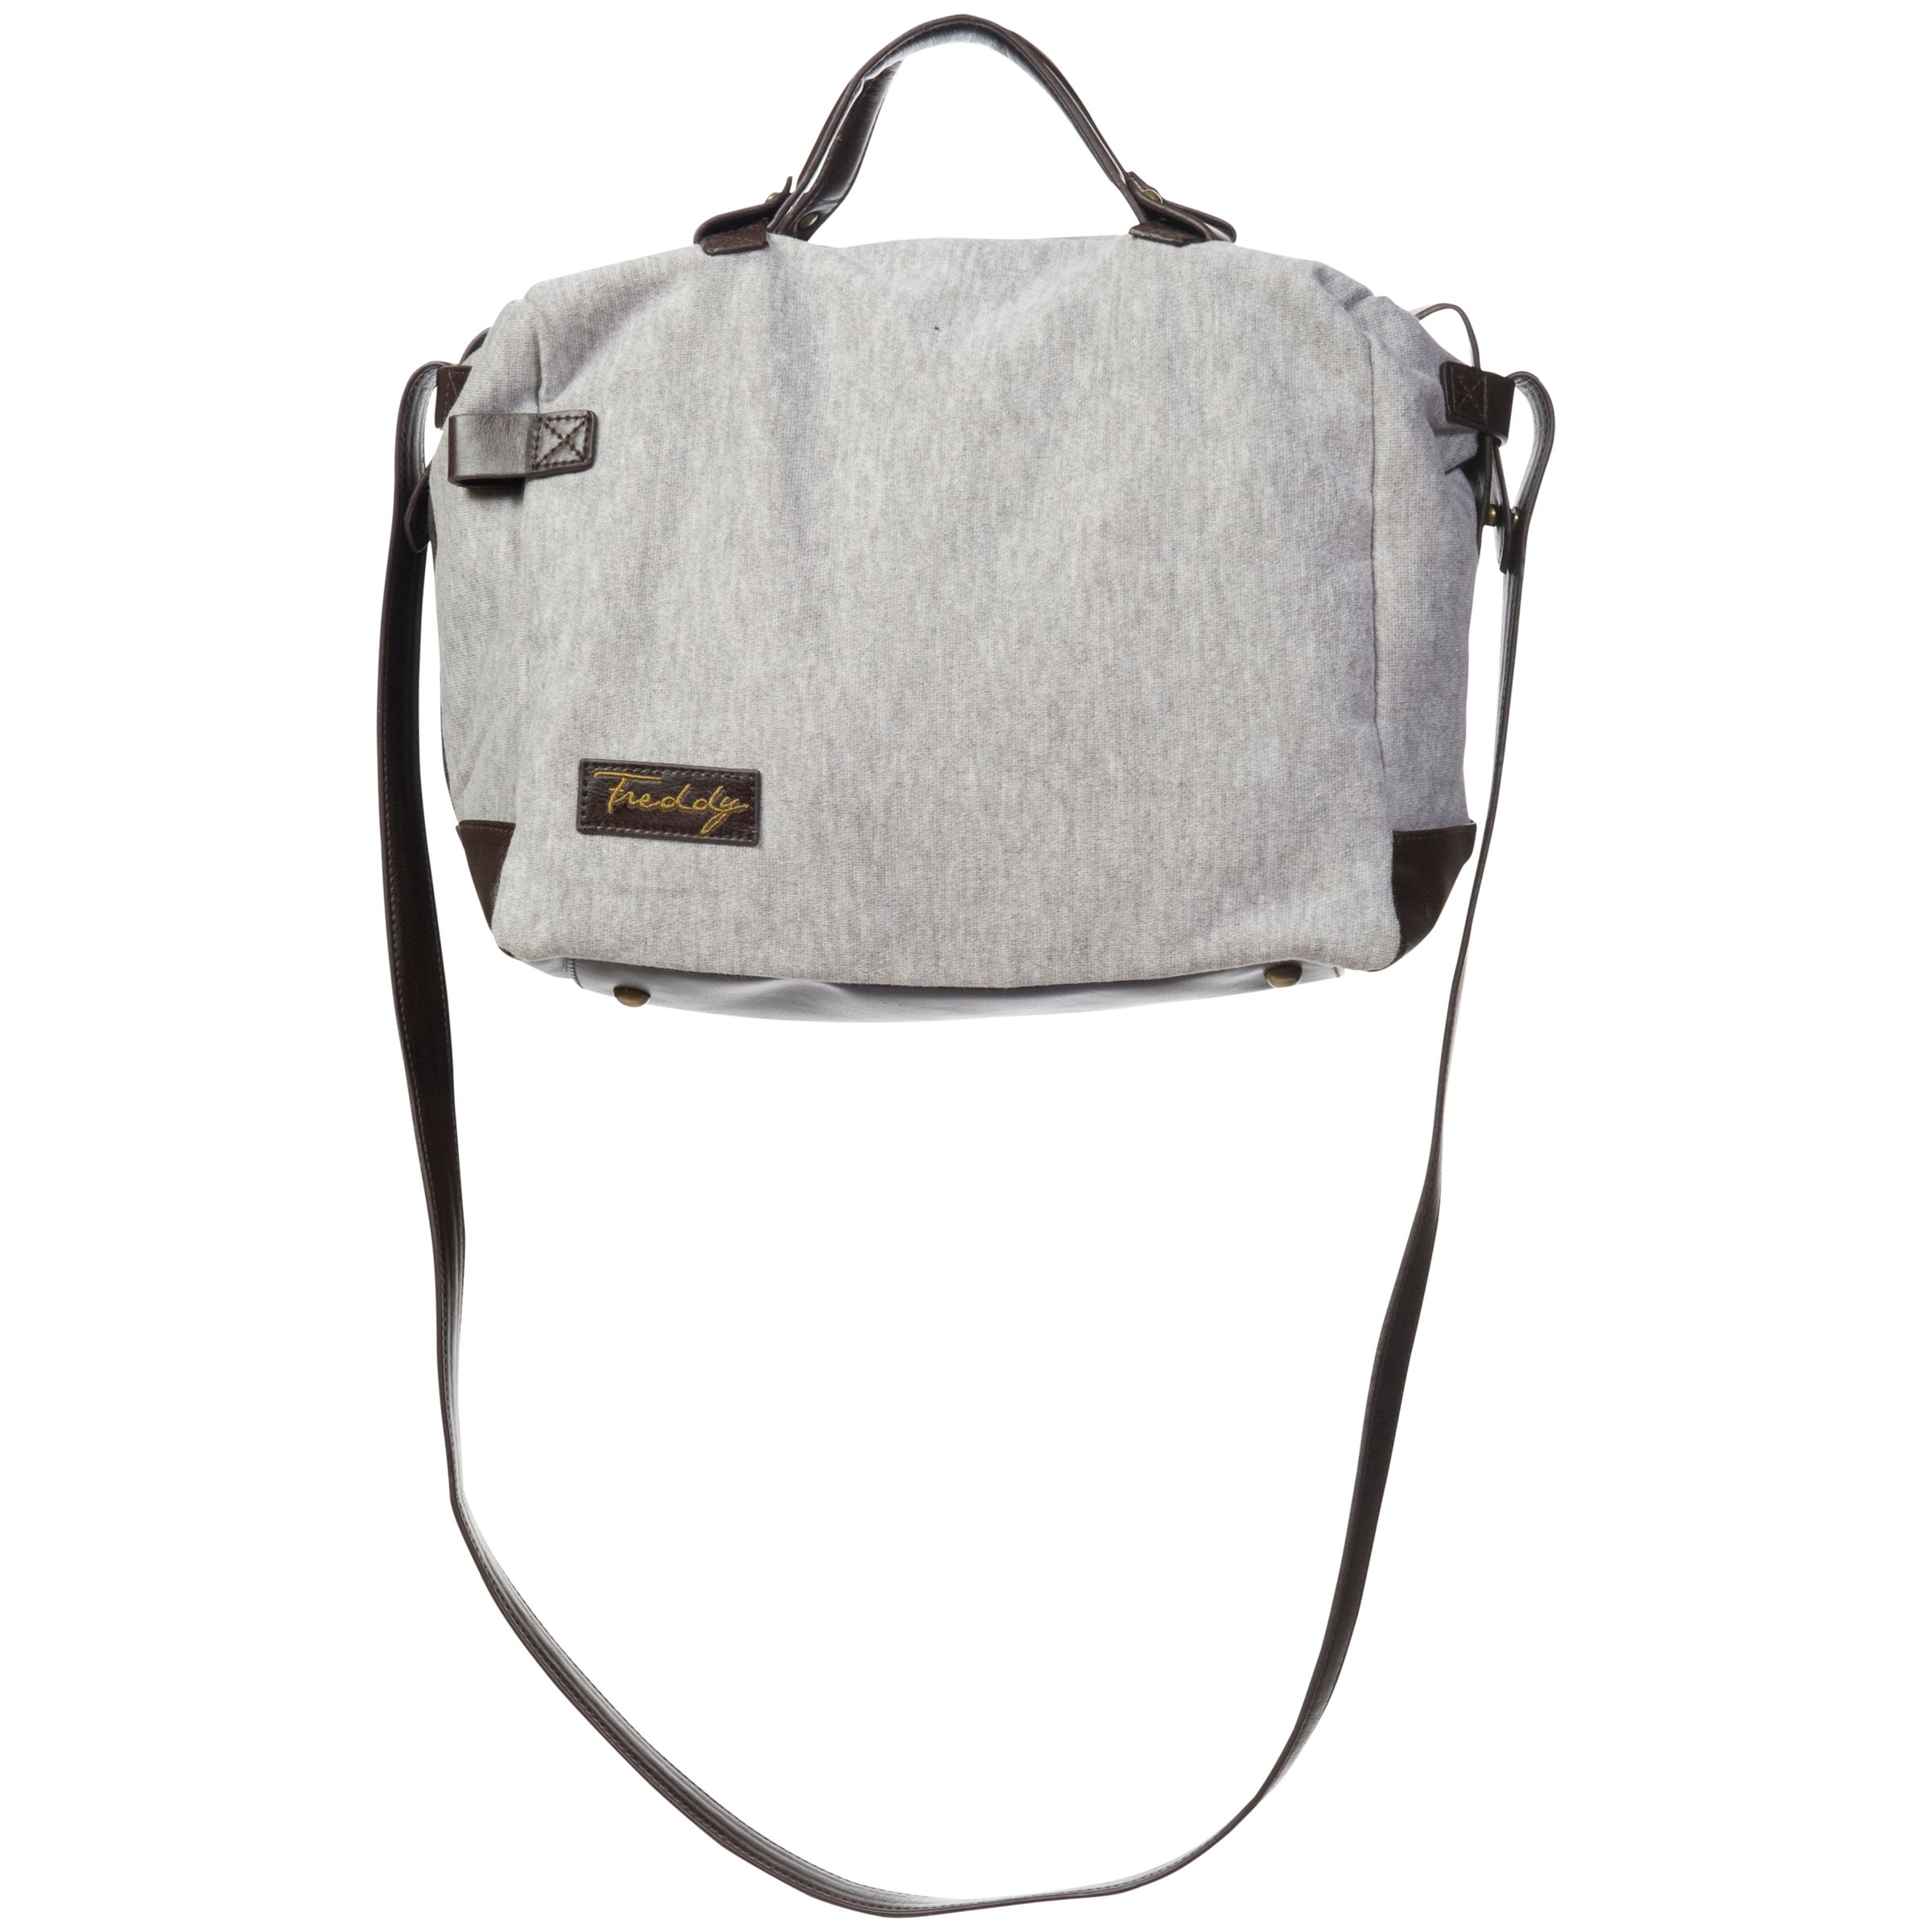 Freddy Fleece Shoulder Bag, Grey Marl